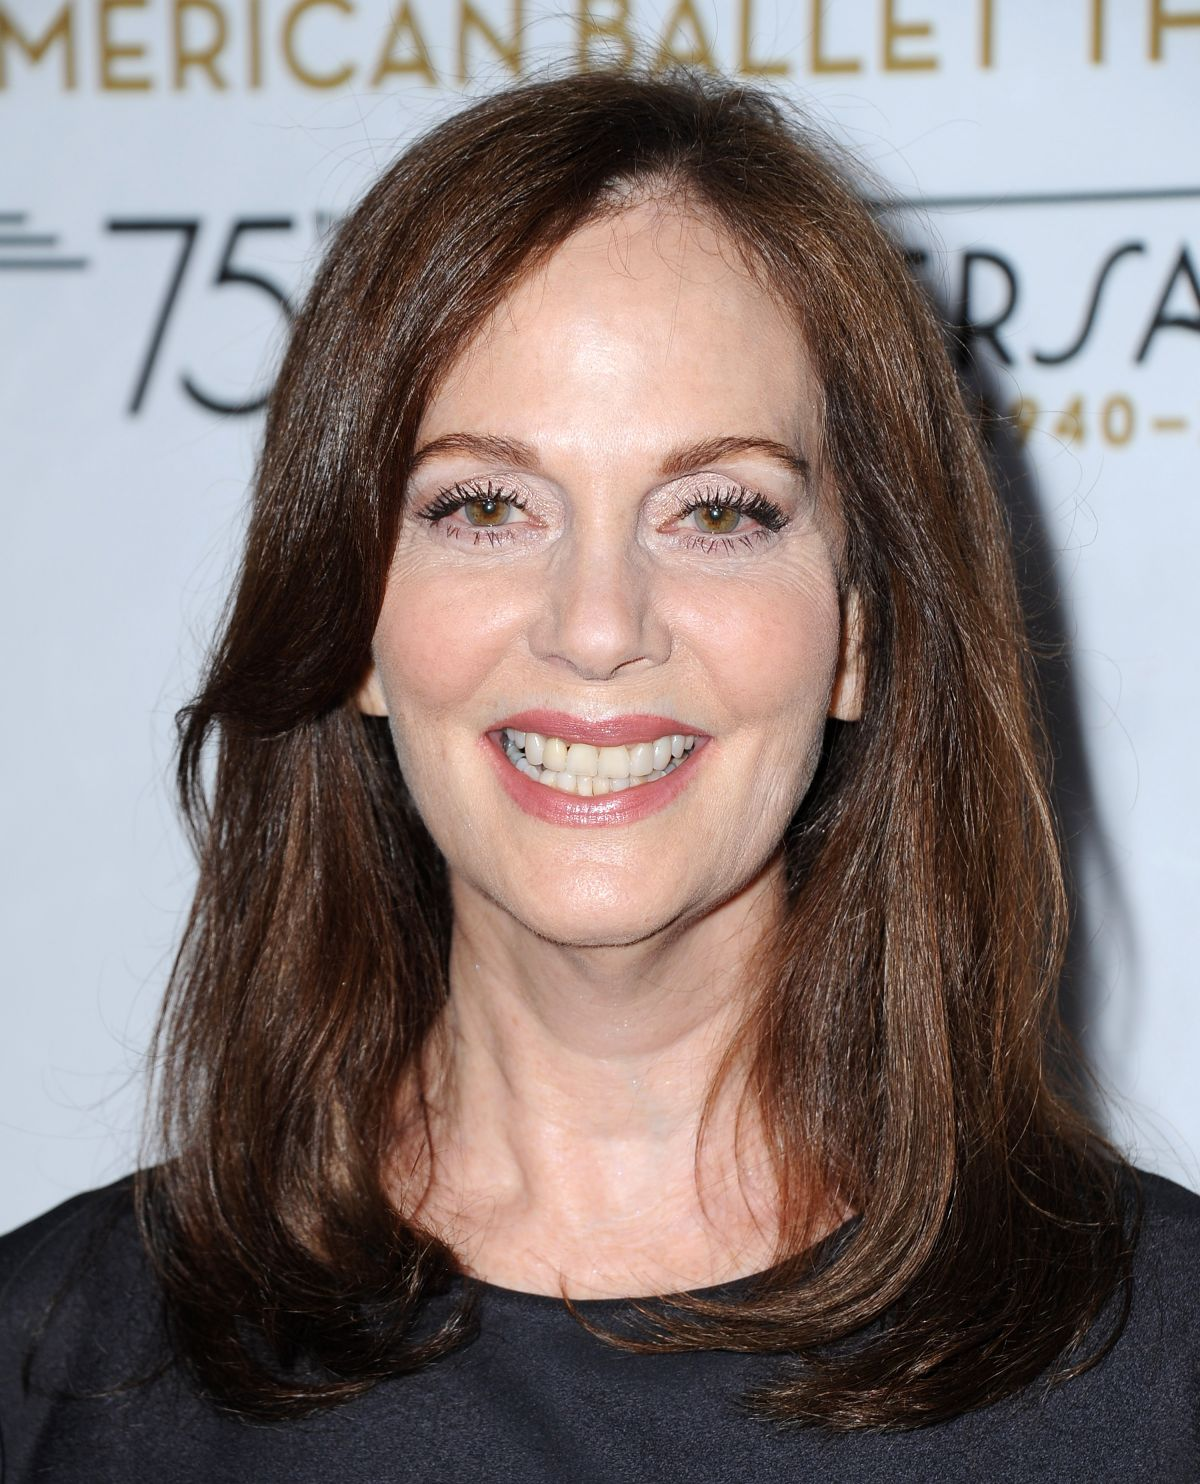 LESLEY ANN WARREN at 75th Anniversary Holiday Benefit Hosted by the American Ballet Theatre in Beverly Hills 12/07/2015